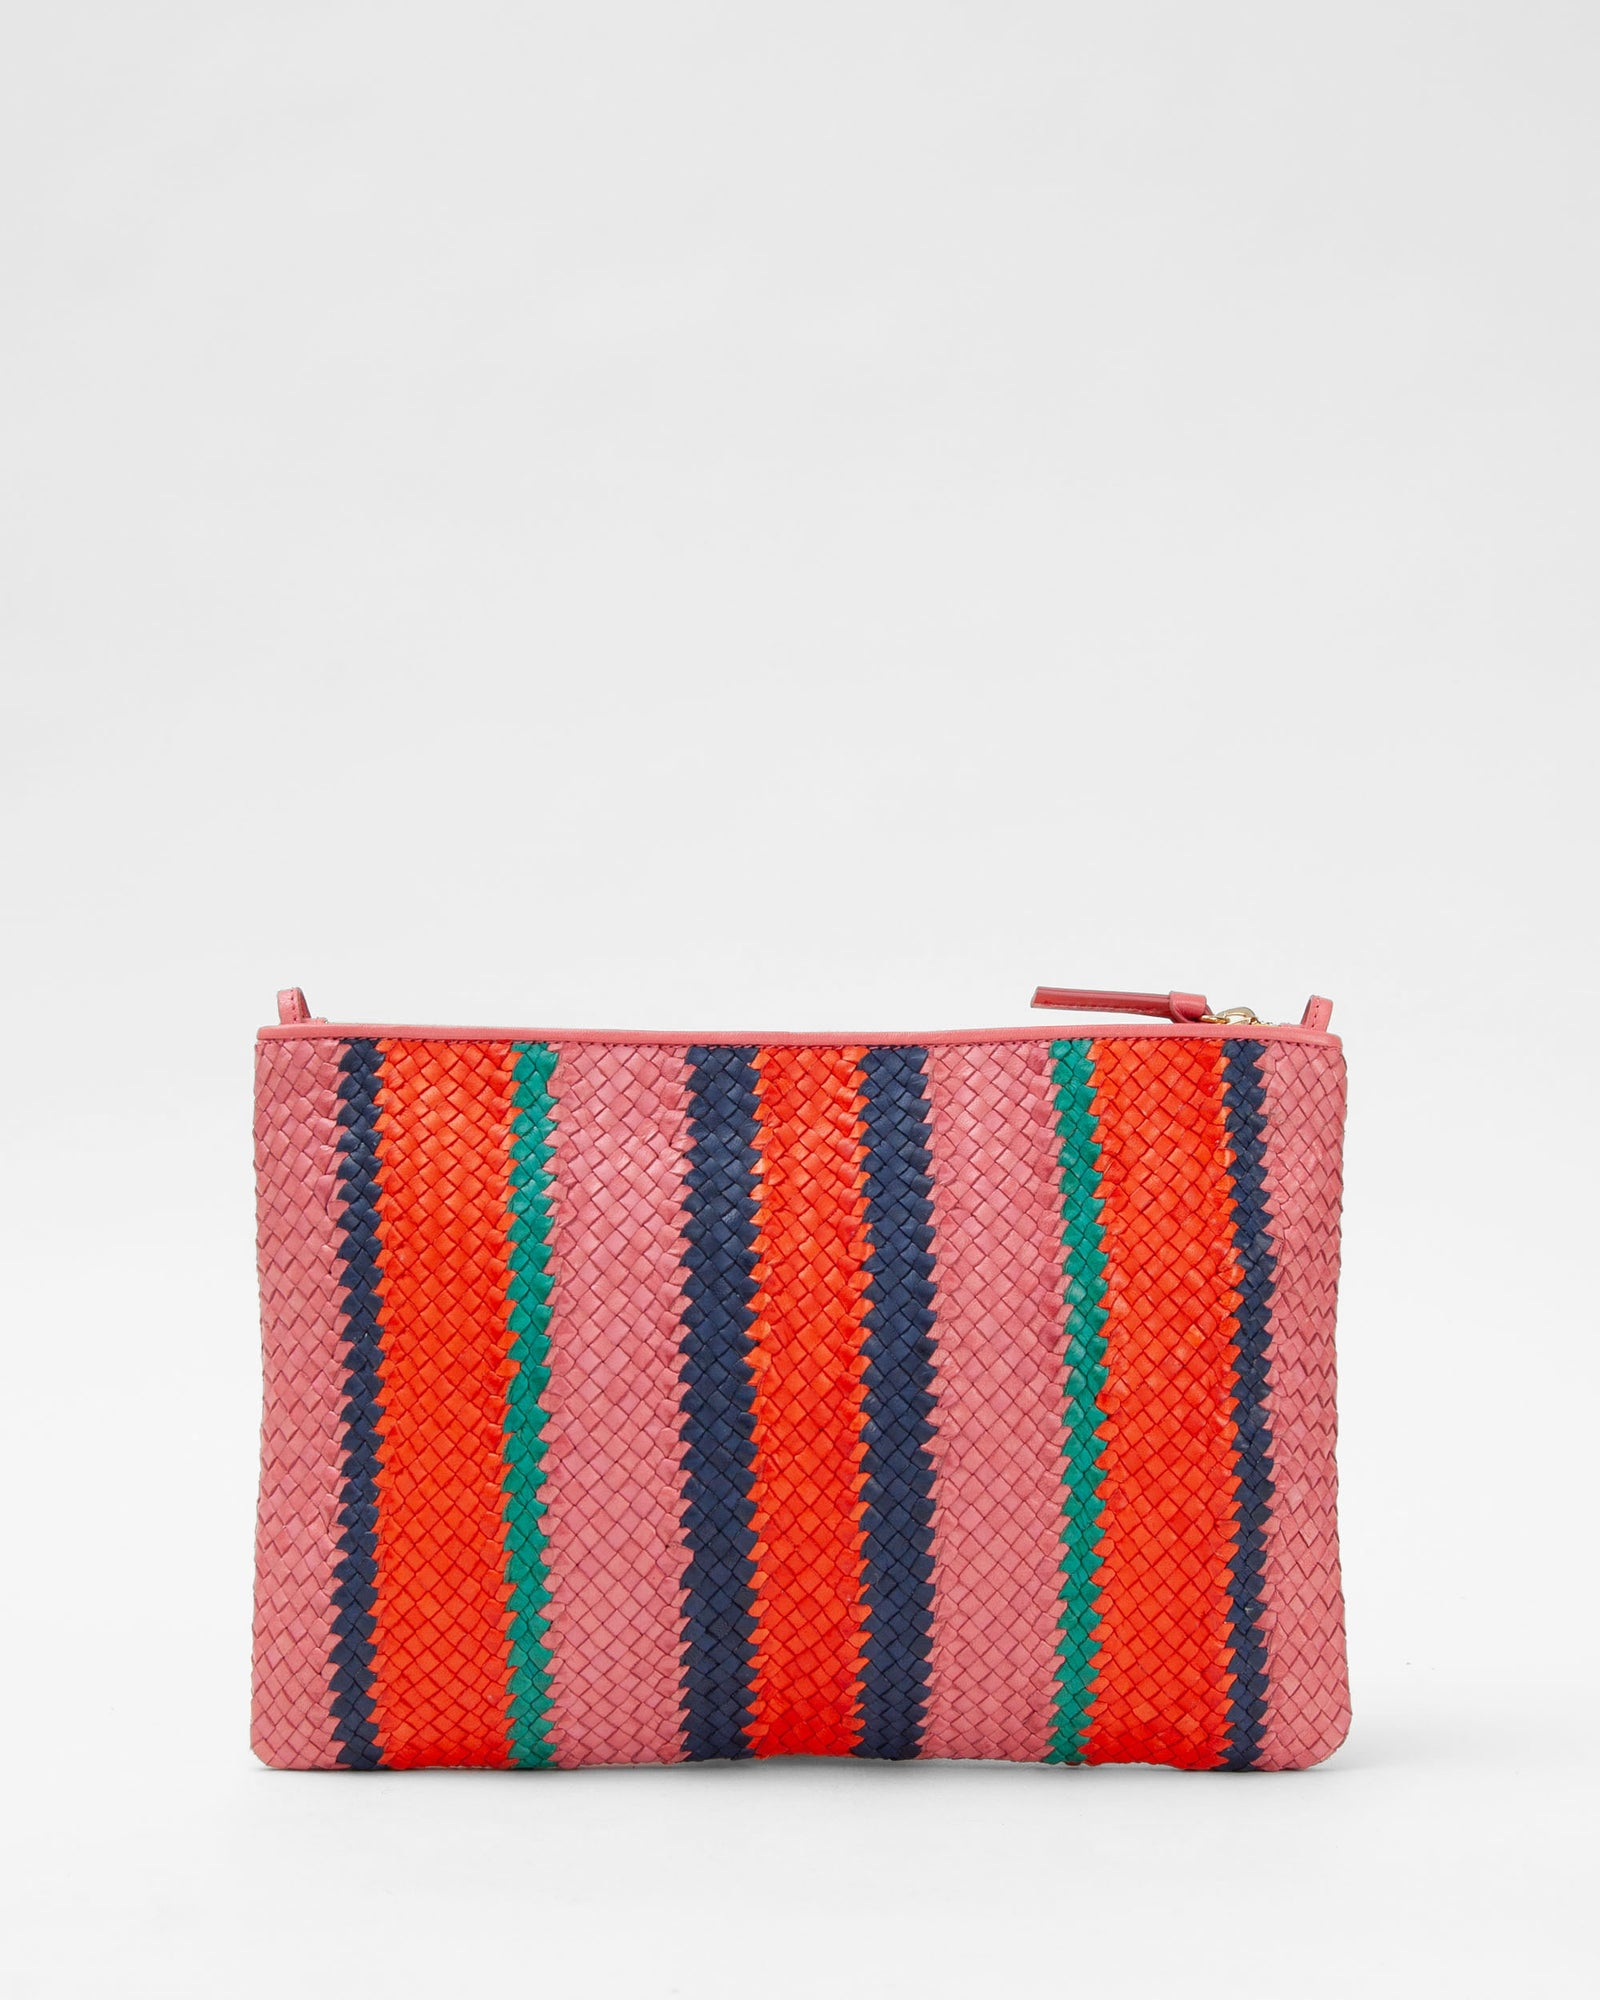 Petal with Poppy, Navy & Mint Opal Woven Stripes Flat Clutch w/ Tabs - Back